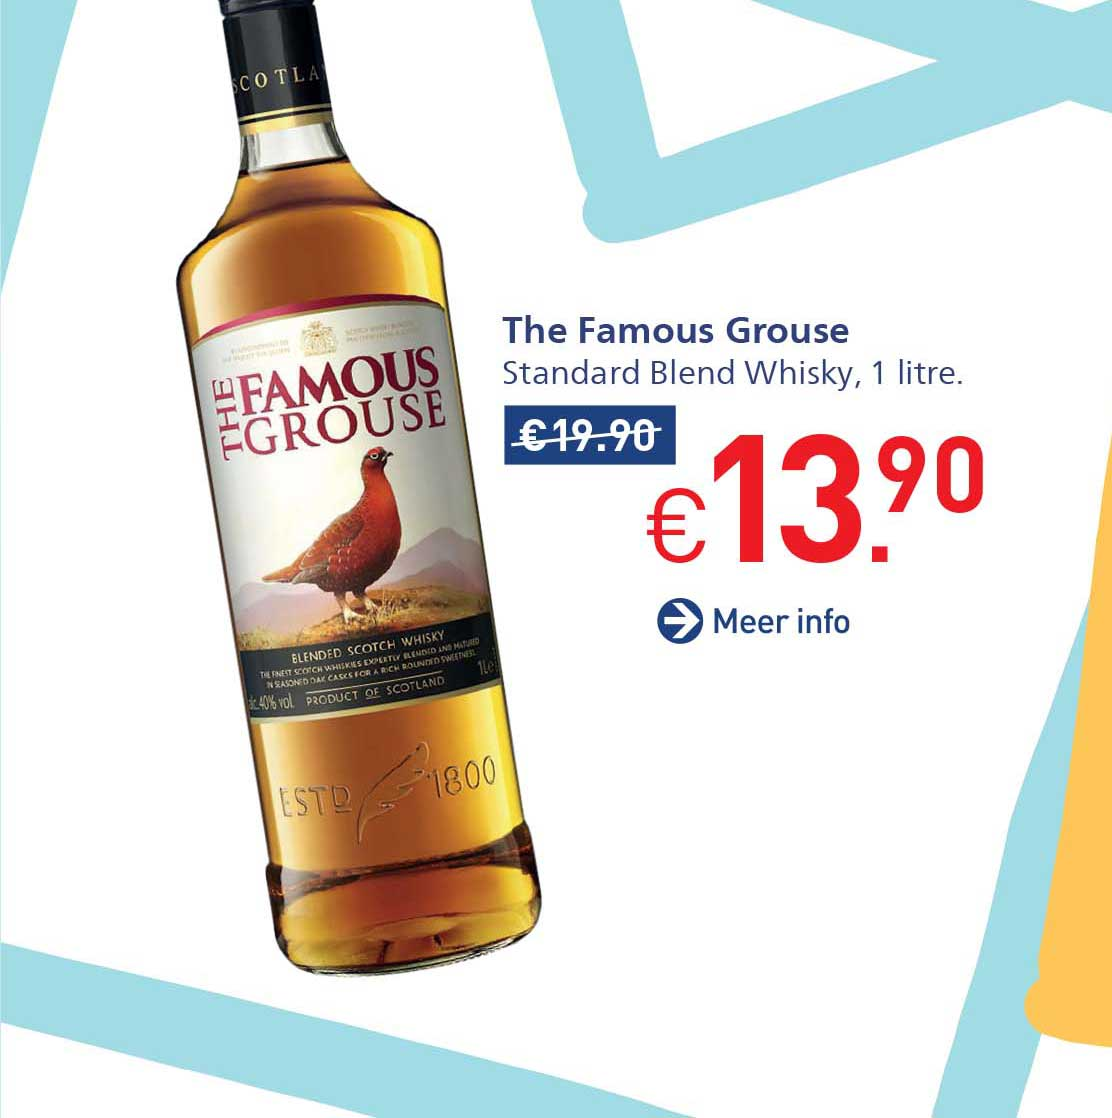 Schiphol See Buy Fly The Famous Grouse